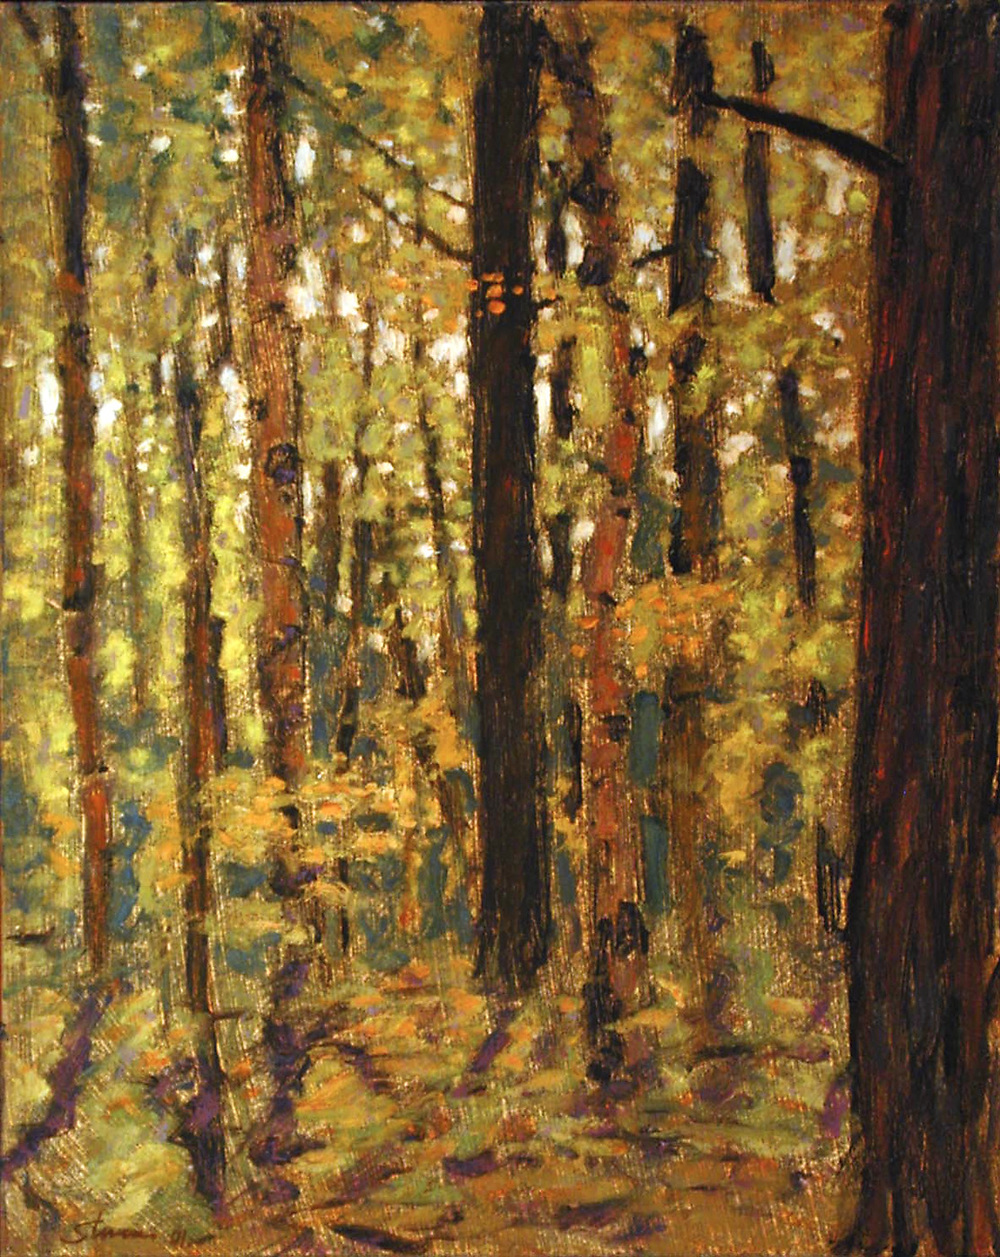 Forest Interior | oil on panel | 15 x 12"